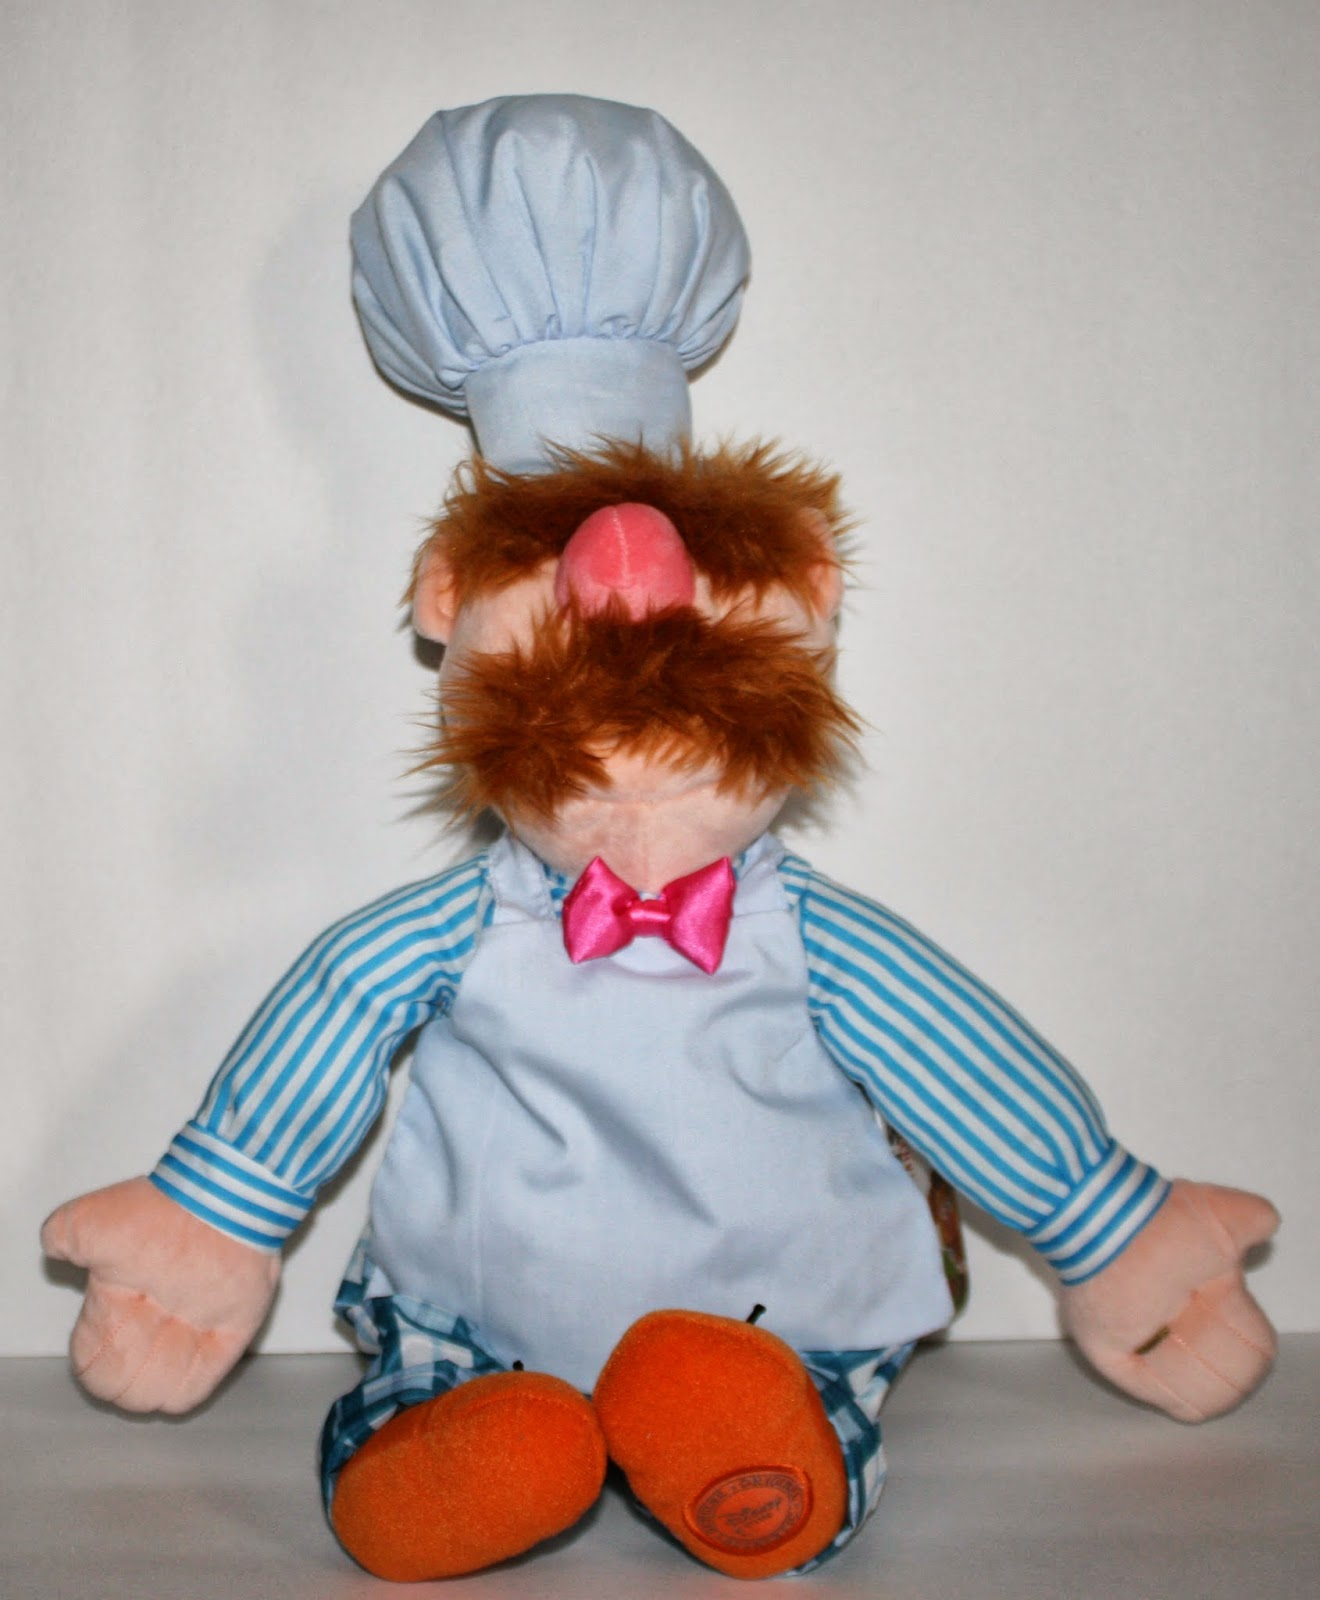 Top 50 Muppets Loc 80: PLANET OF THE DOLLS: Doll-A-Day 80: The Swedish Chef